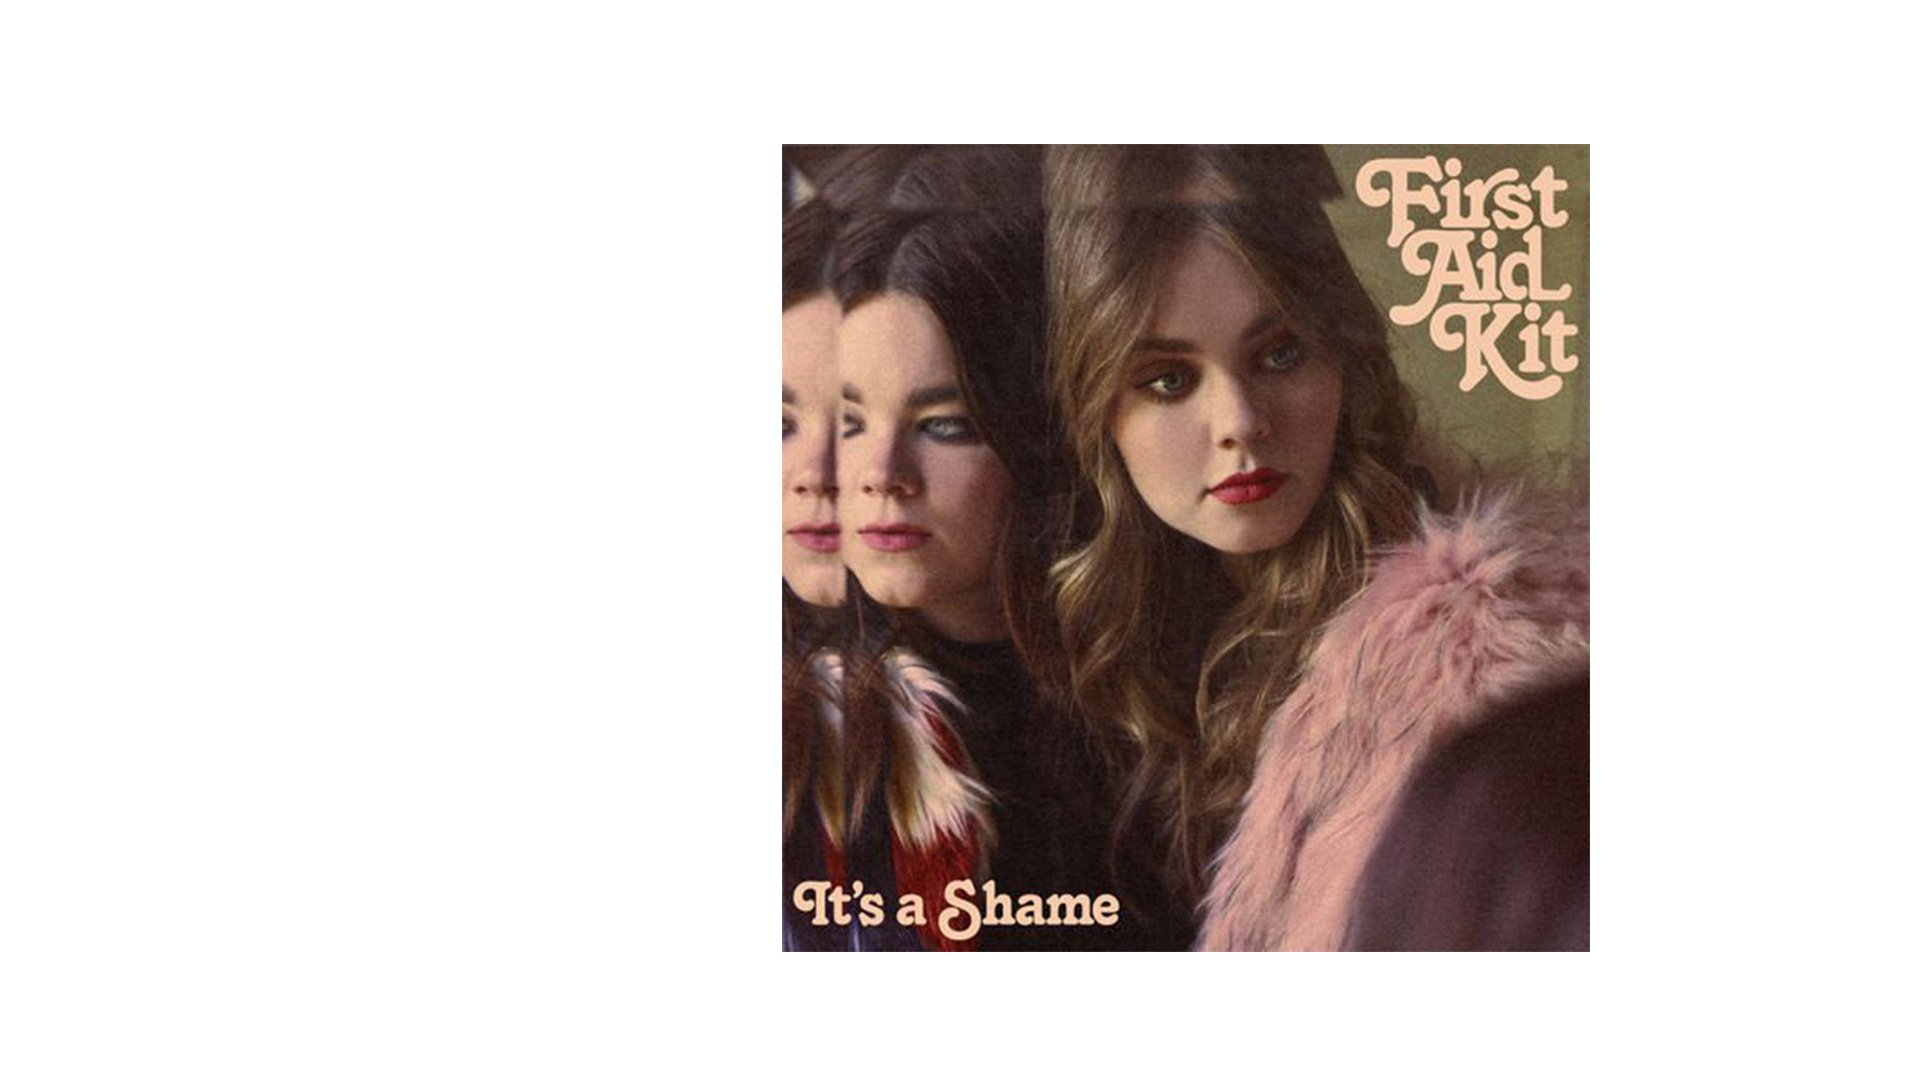 It's a Shame Single - First Aid Kit